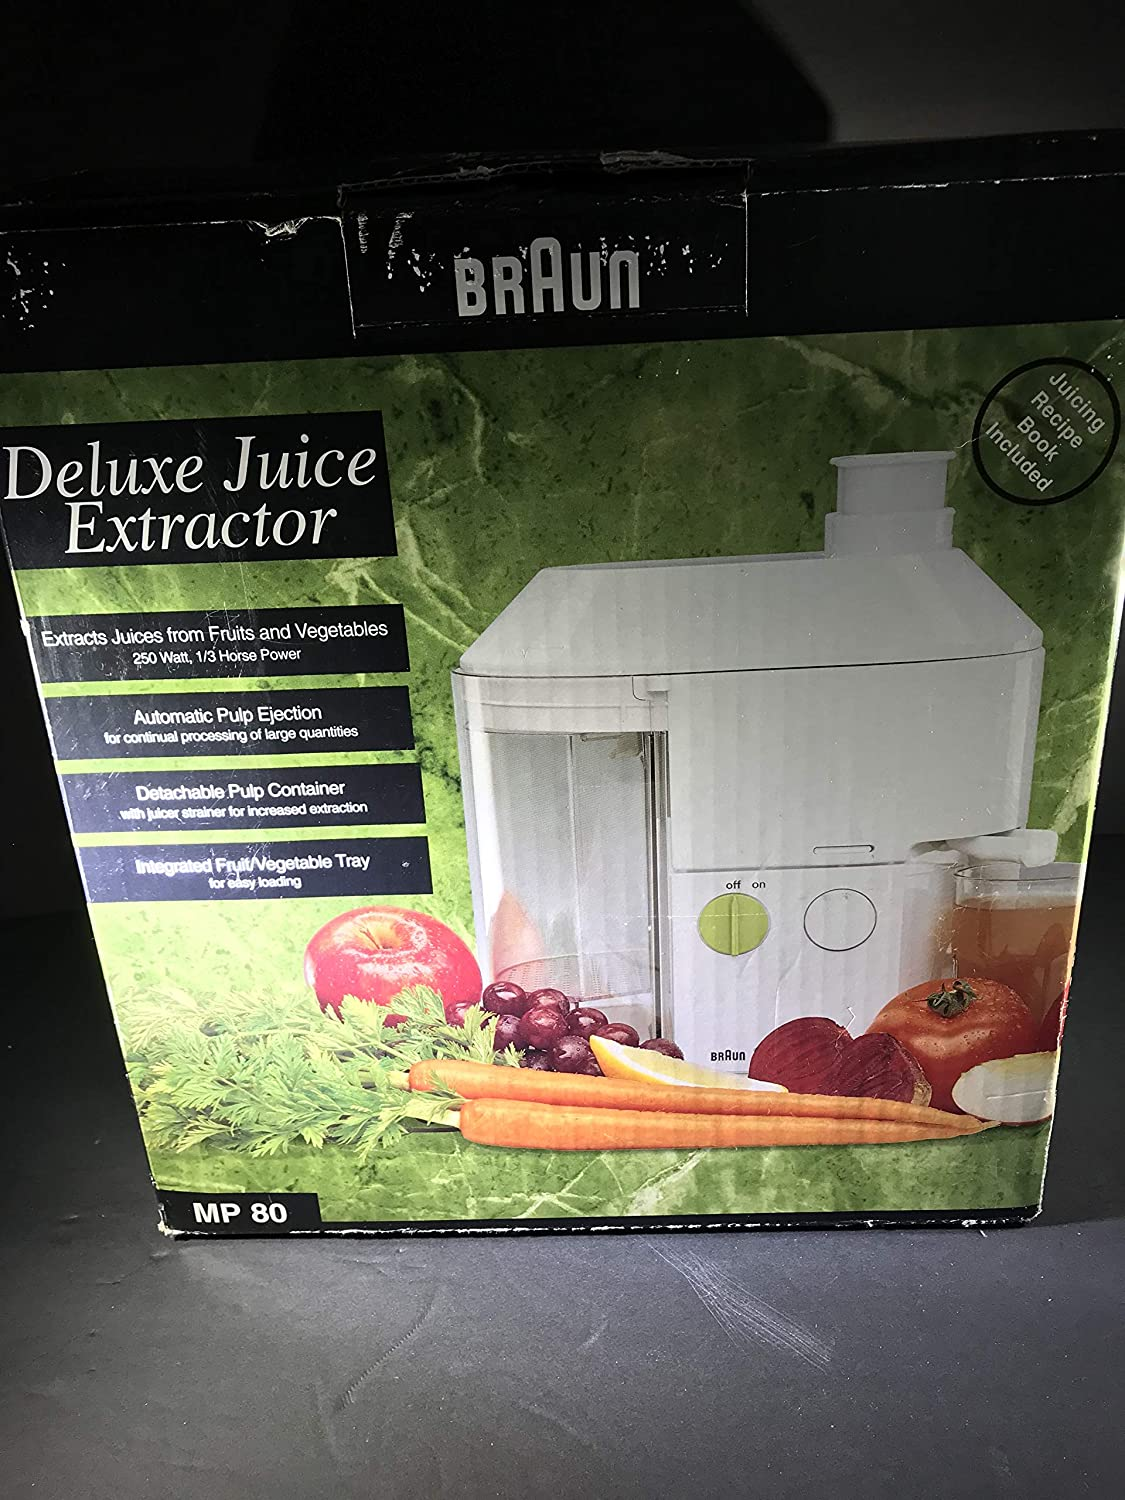 Braun Deluxe Juice Extractor with Automatic Pulp Ejection